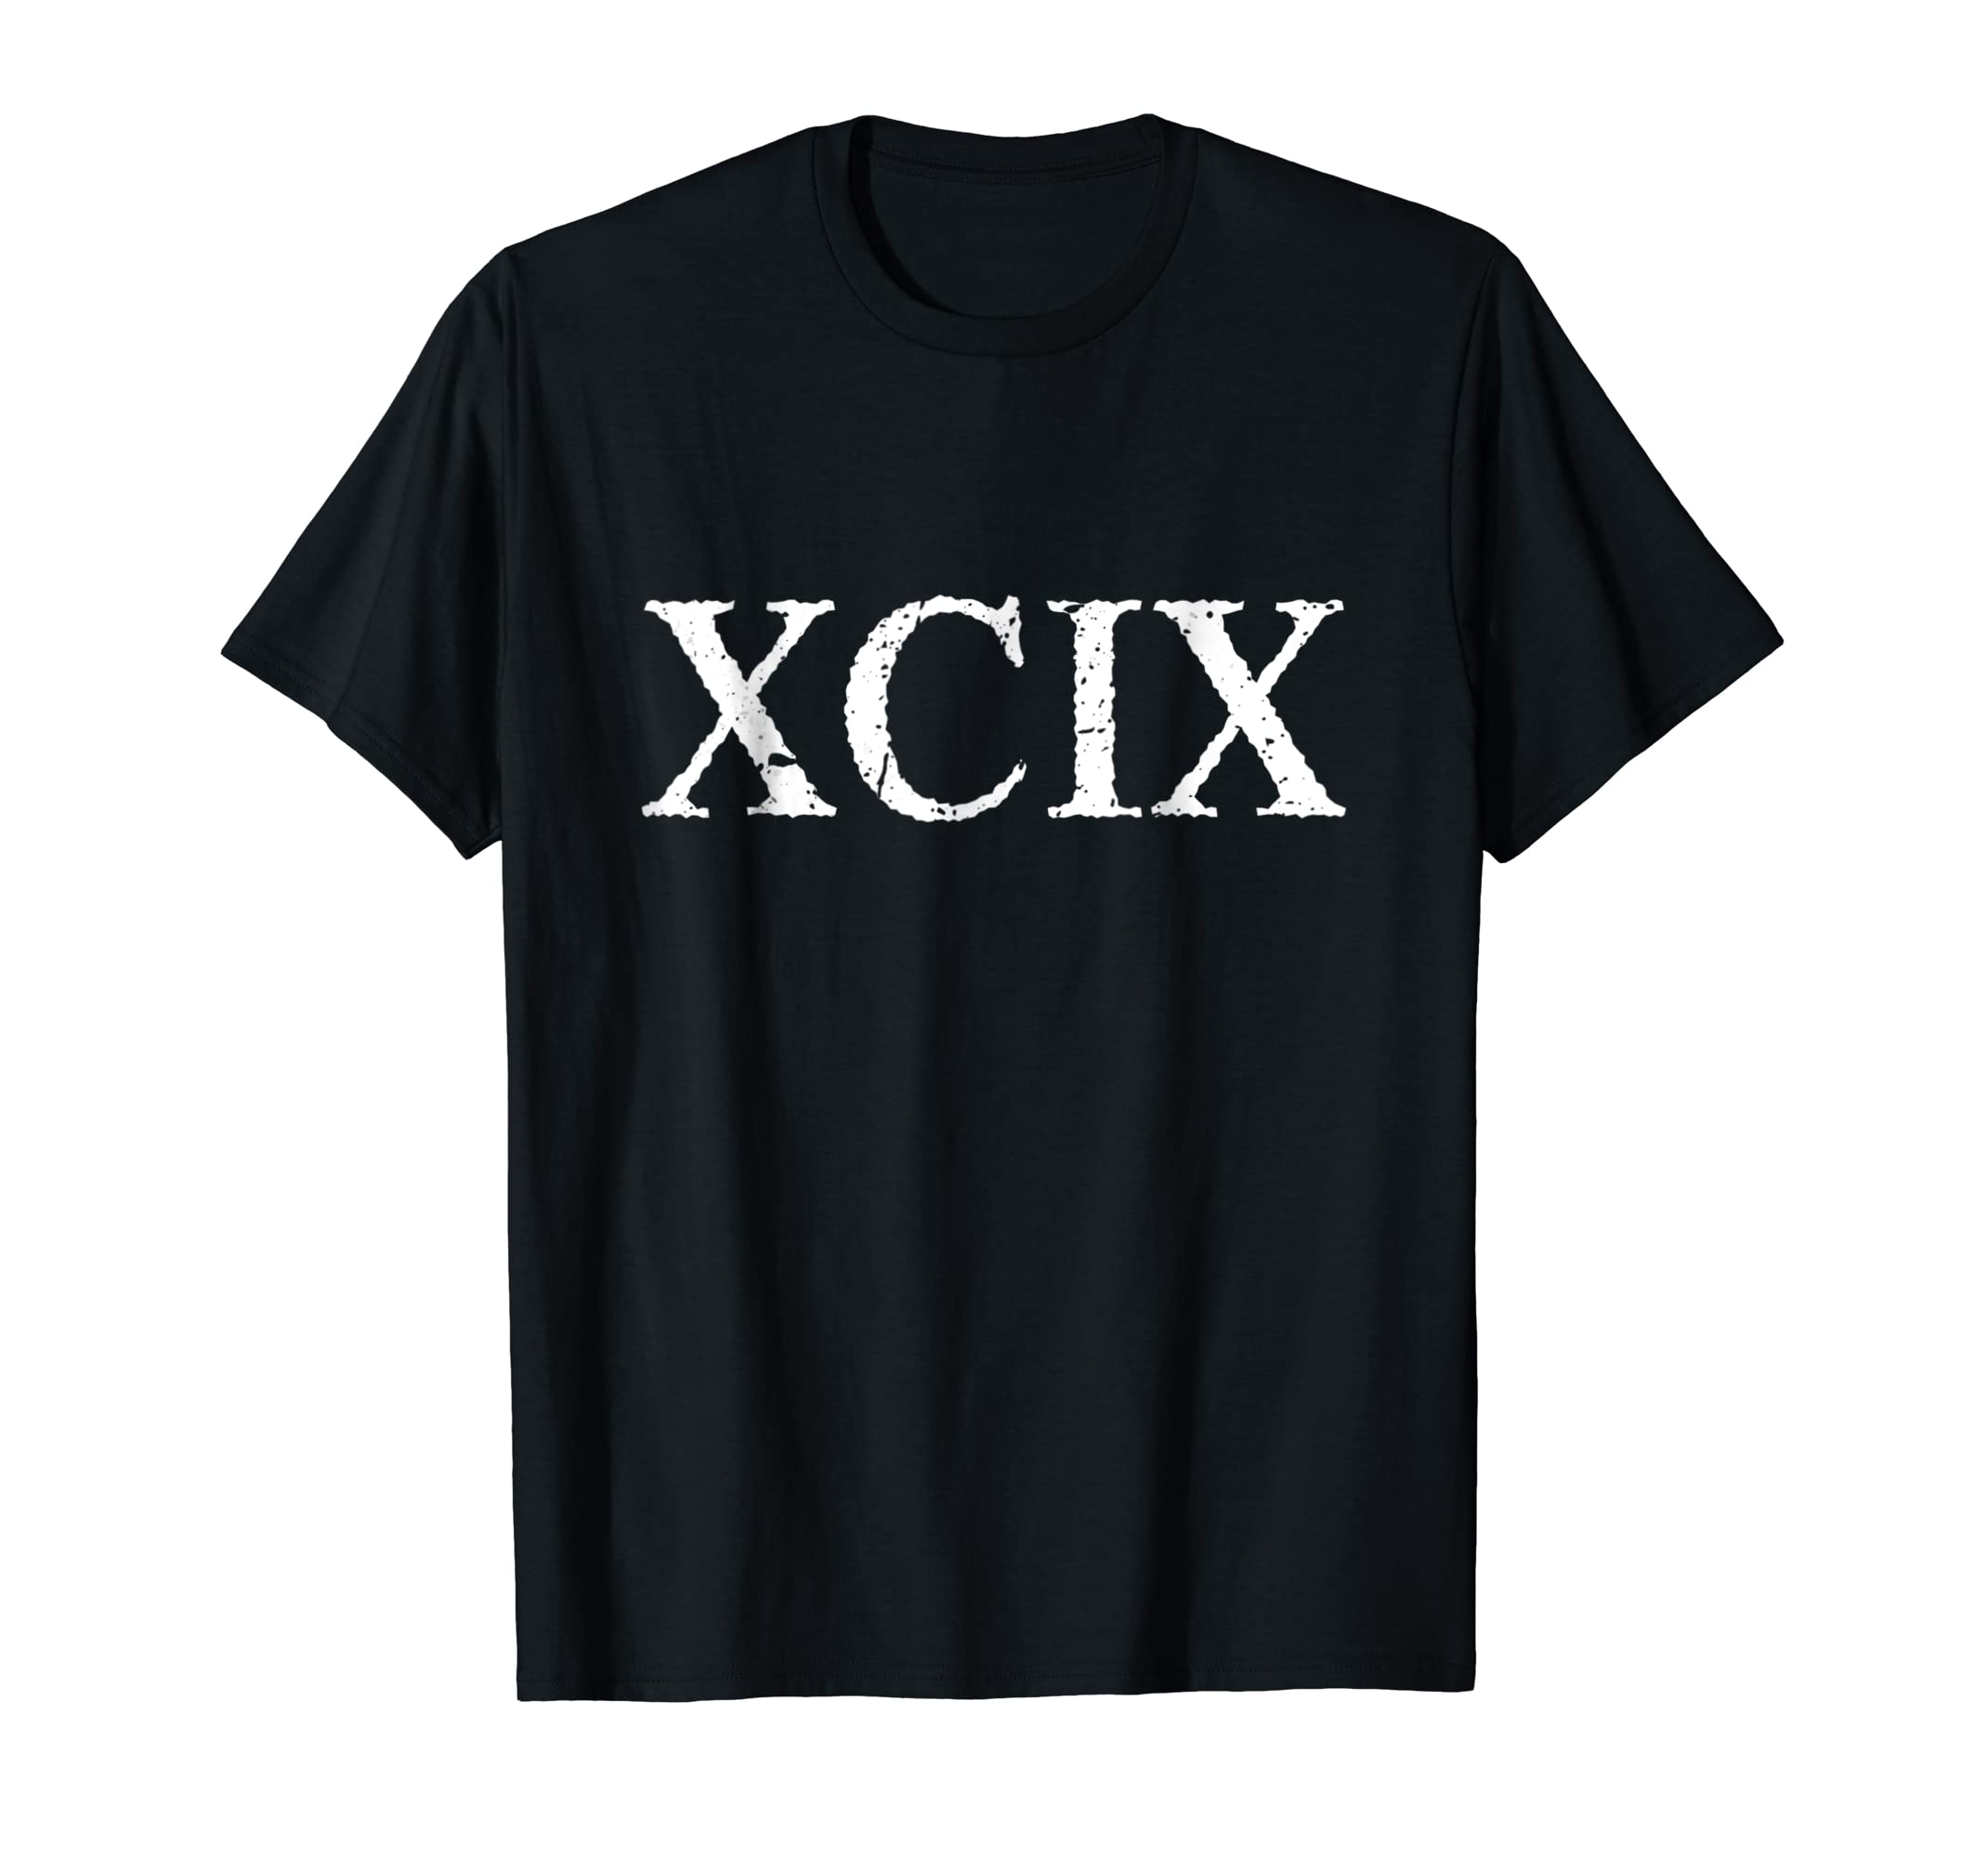 Amazon Roman Numeral 99 XCIX Shirt Clothing